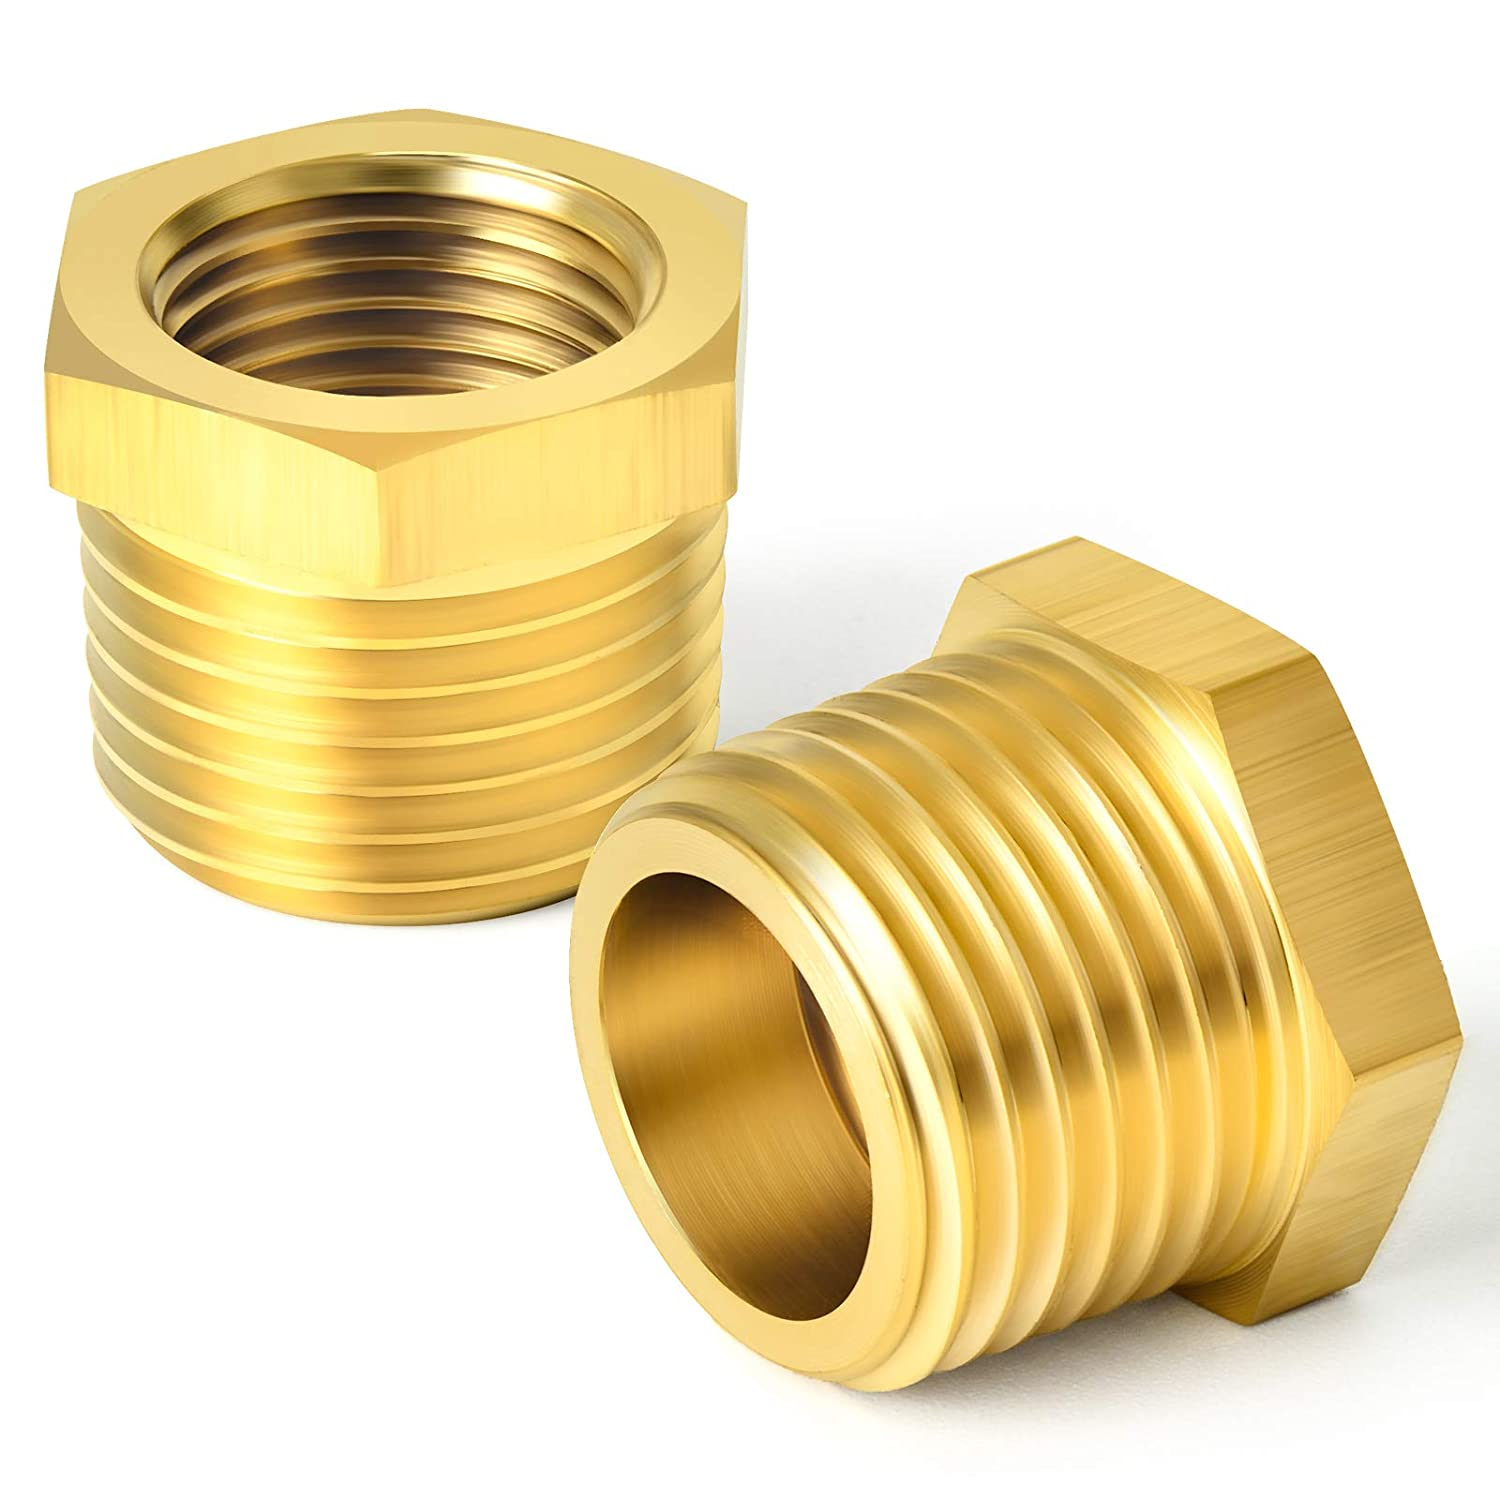 TAISHER 2PCS Excellent Brass Reducer Hex Threaded Fitting 1